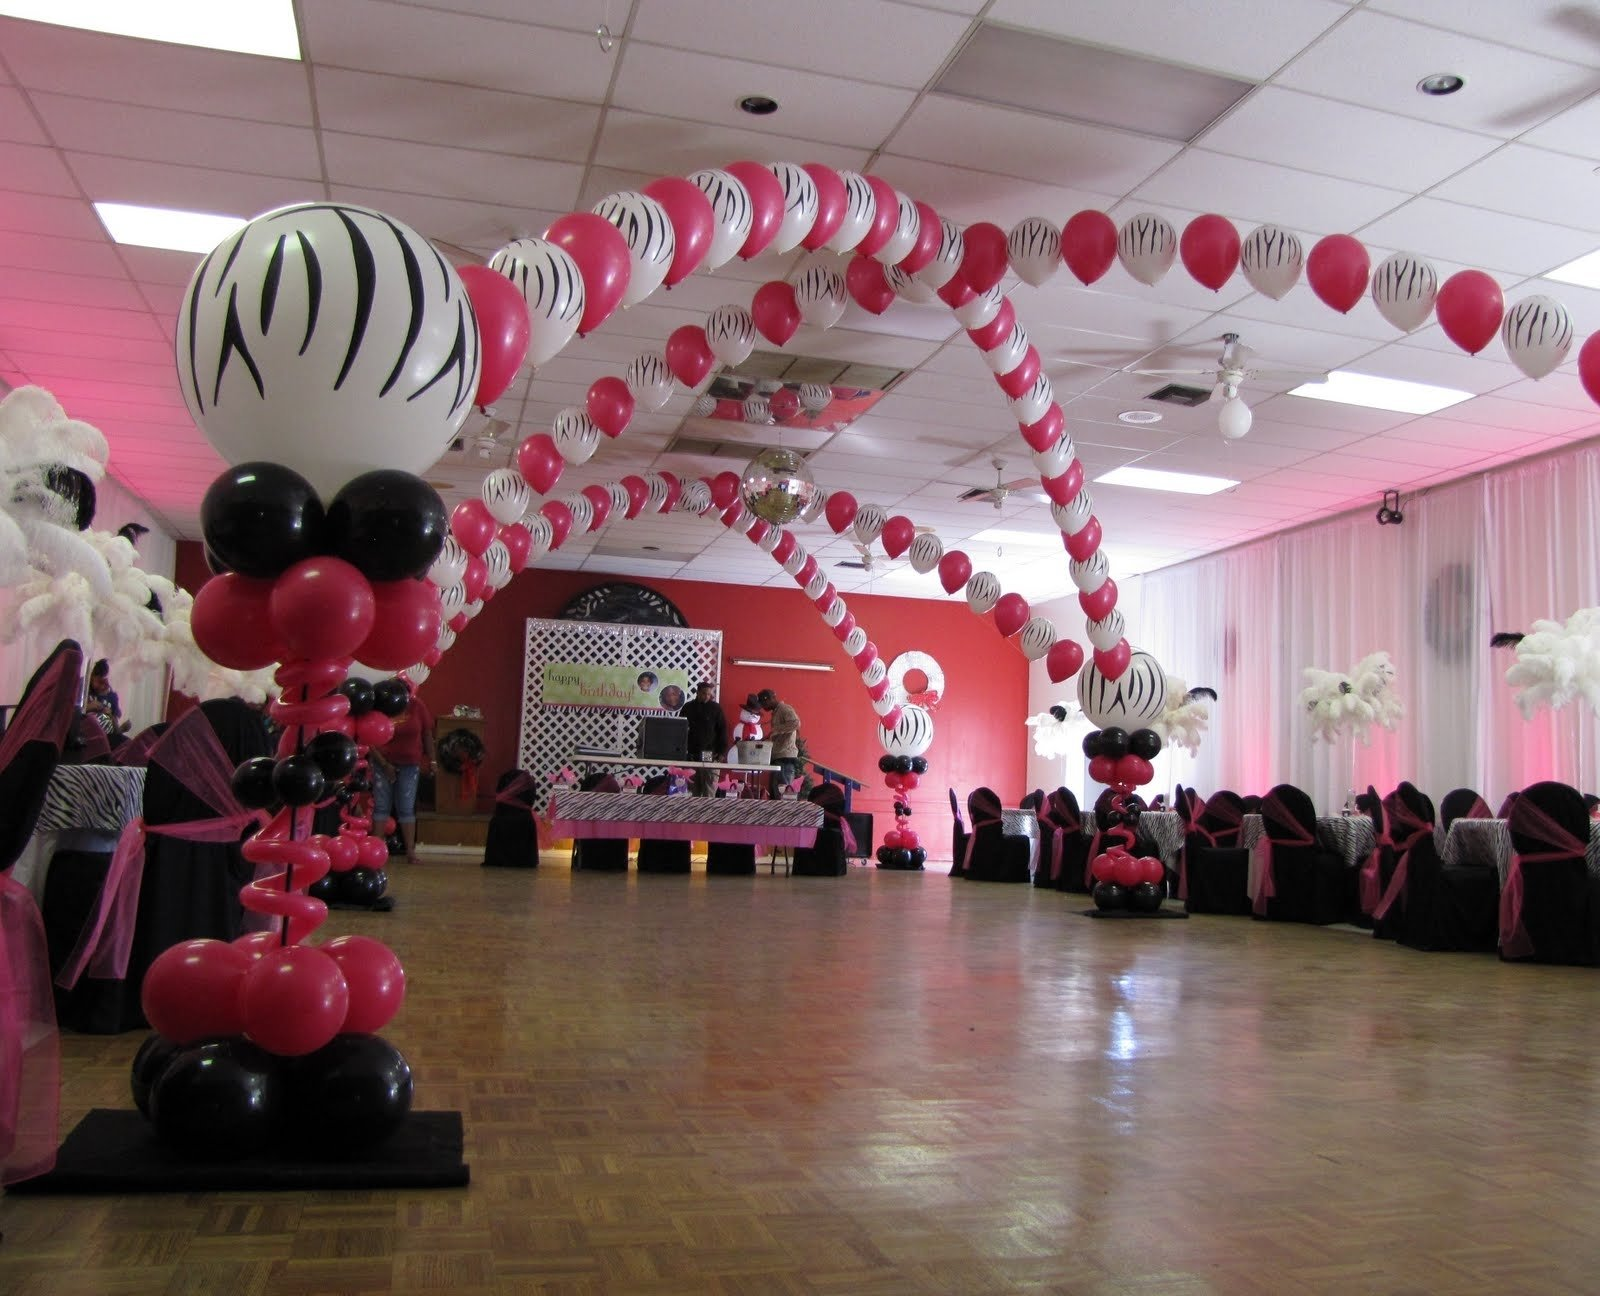 10 Perfect Ideas For 16Th Birthday Party themes birthday ideas for a cheap 16th birthday party as well as 5 2020